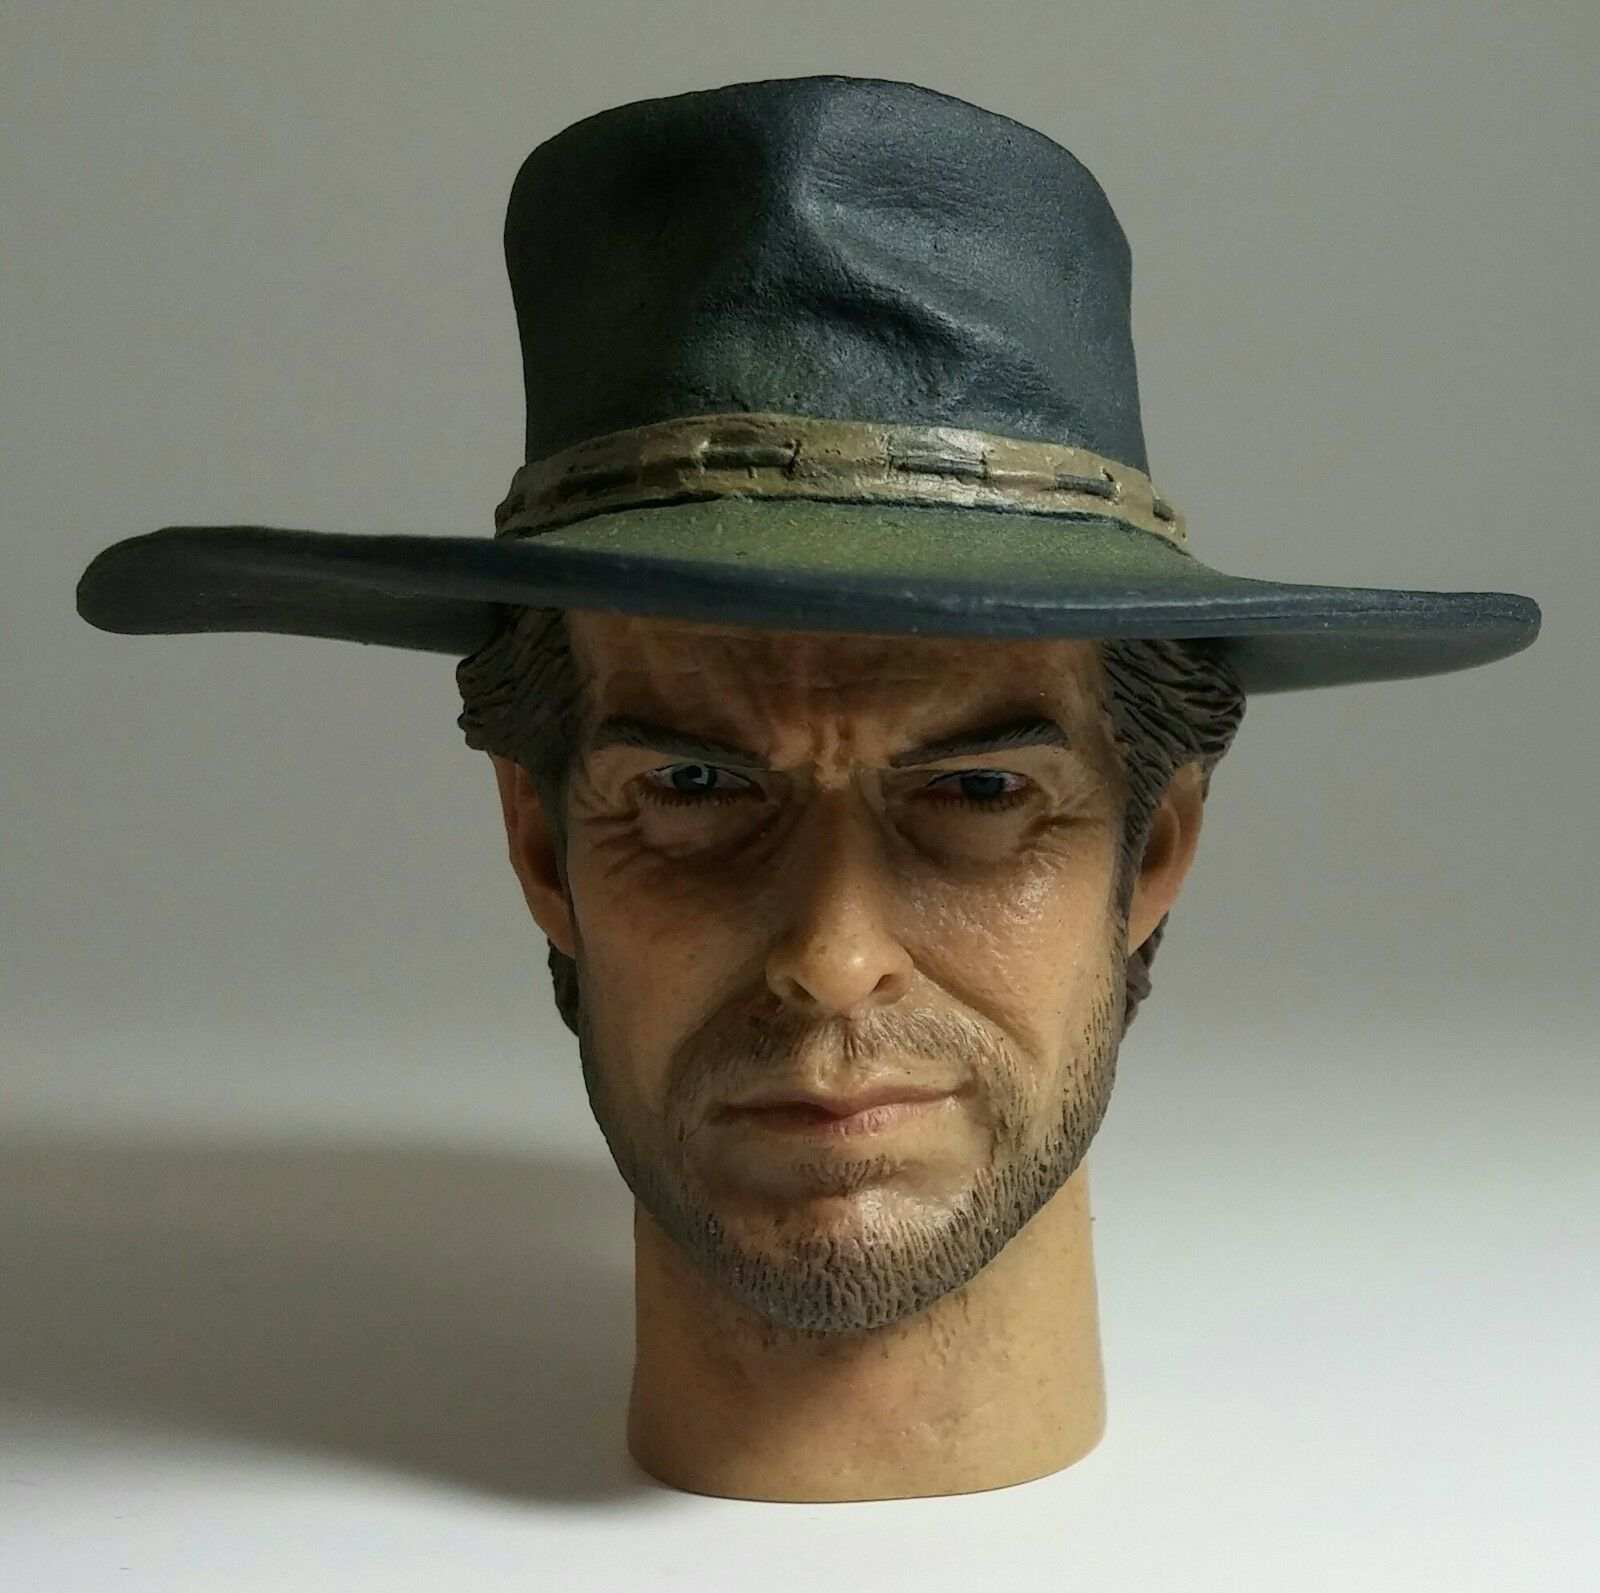 Redman the drifter head sculpt with hat 1 6 toys Cowboy Western